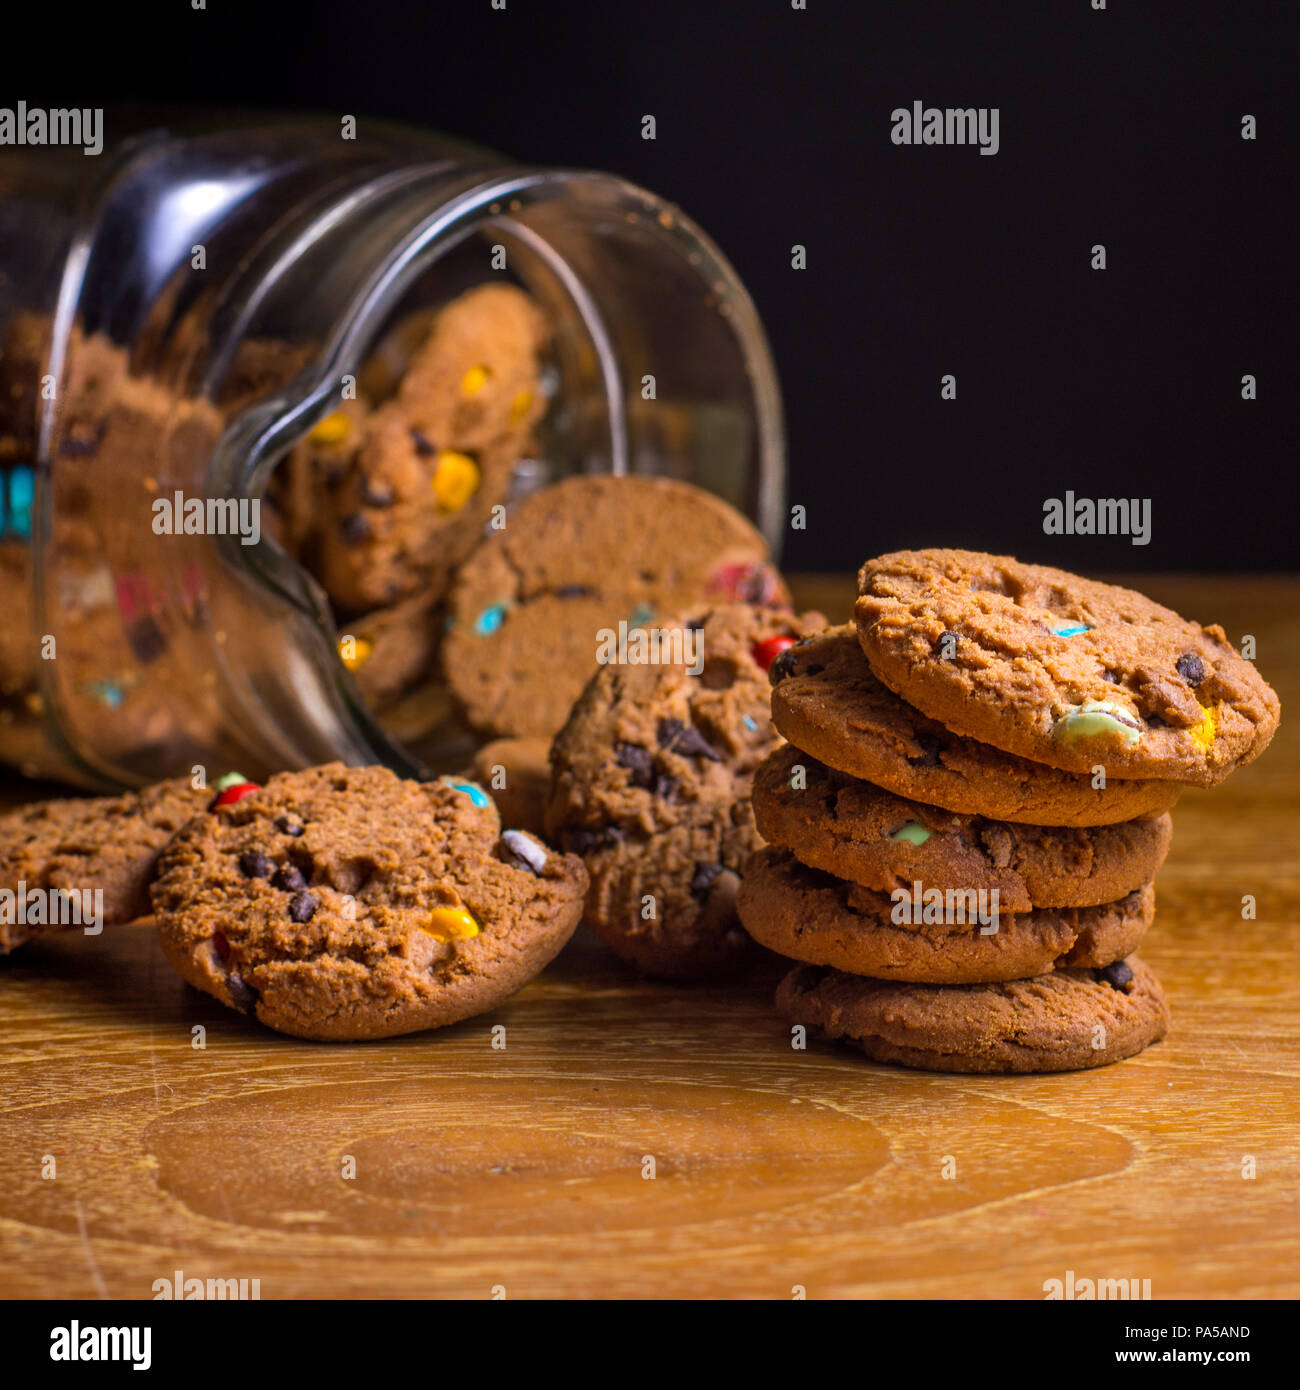 Choc chip smartie cookies falling out of jar on wooden table top. Stock Photo